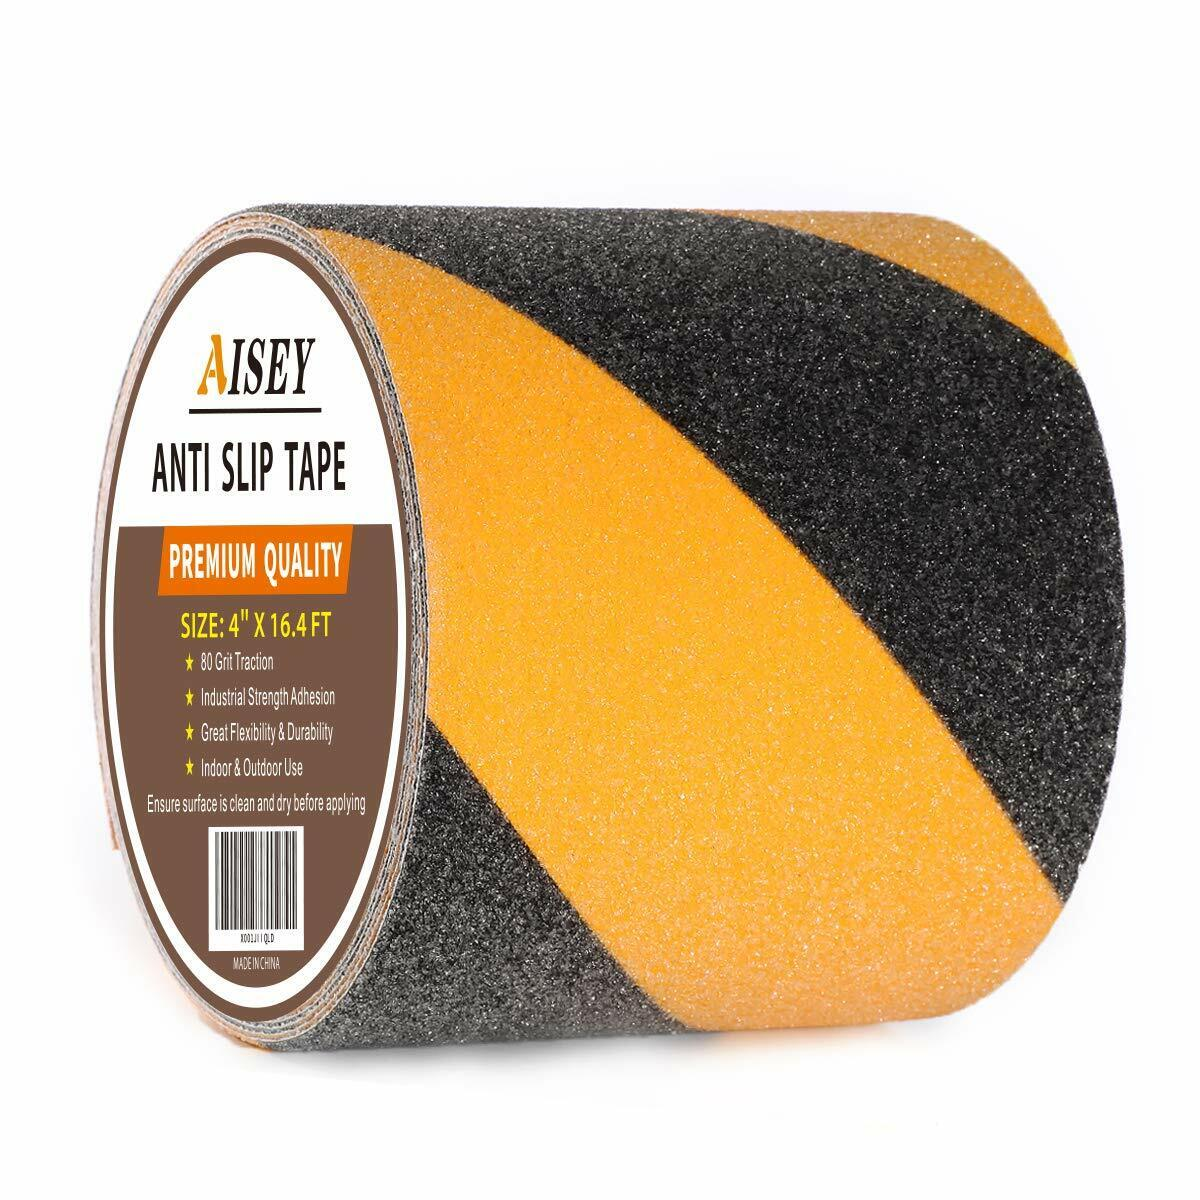 Anti Slip Tape Non Skid High Traction Safety Tape Yellow And